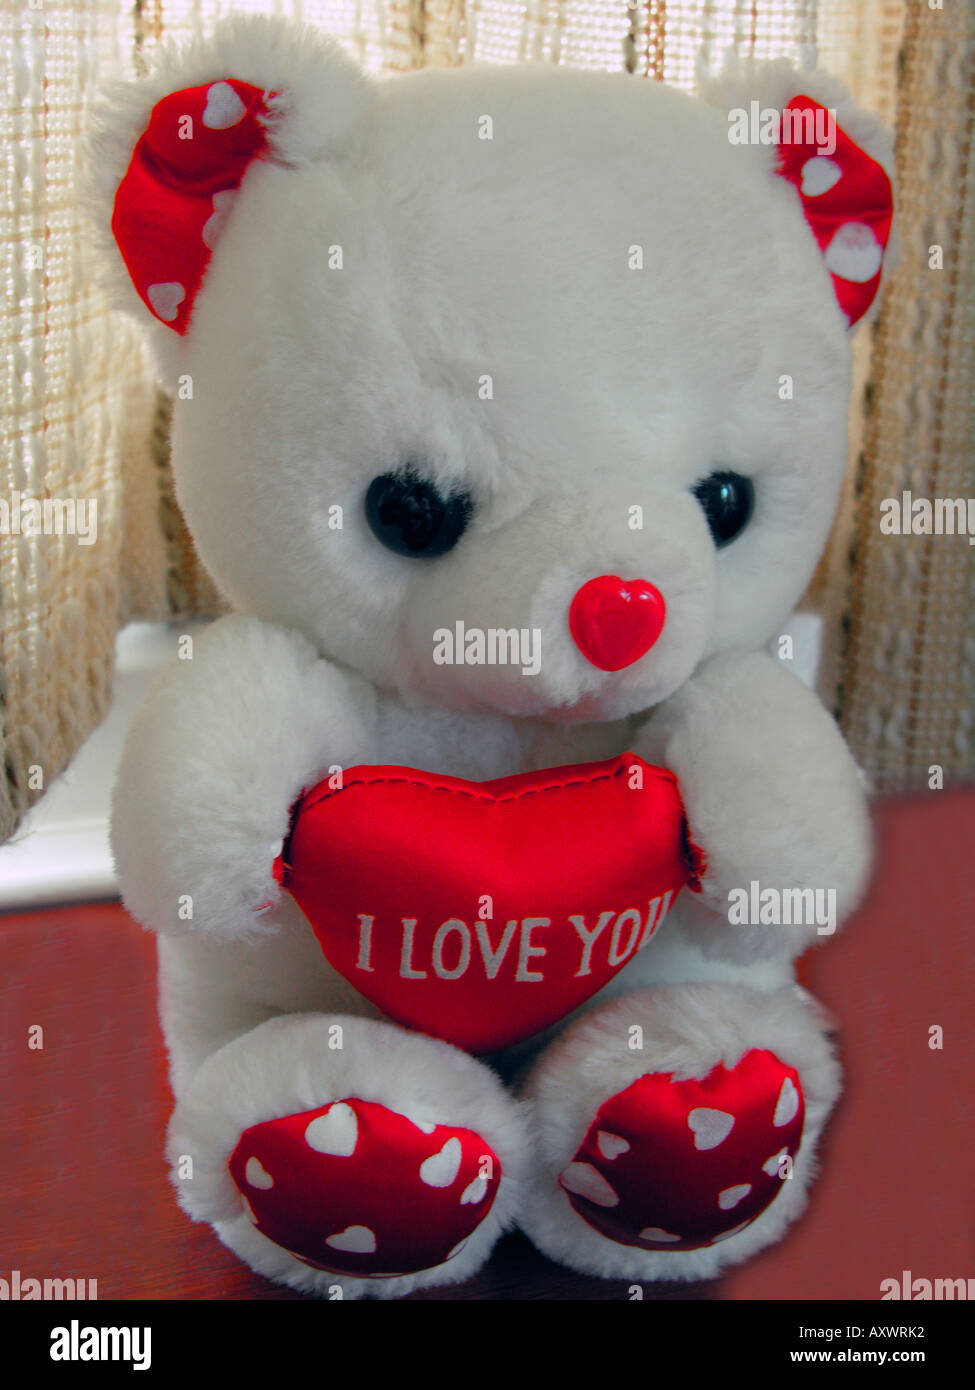 "teddy bear with heart saying "" i love you stock photo: 9672305 - alamy"